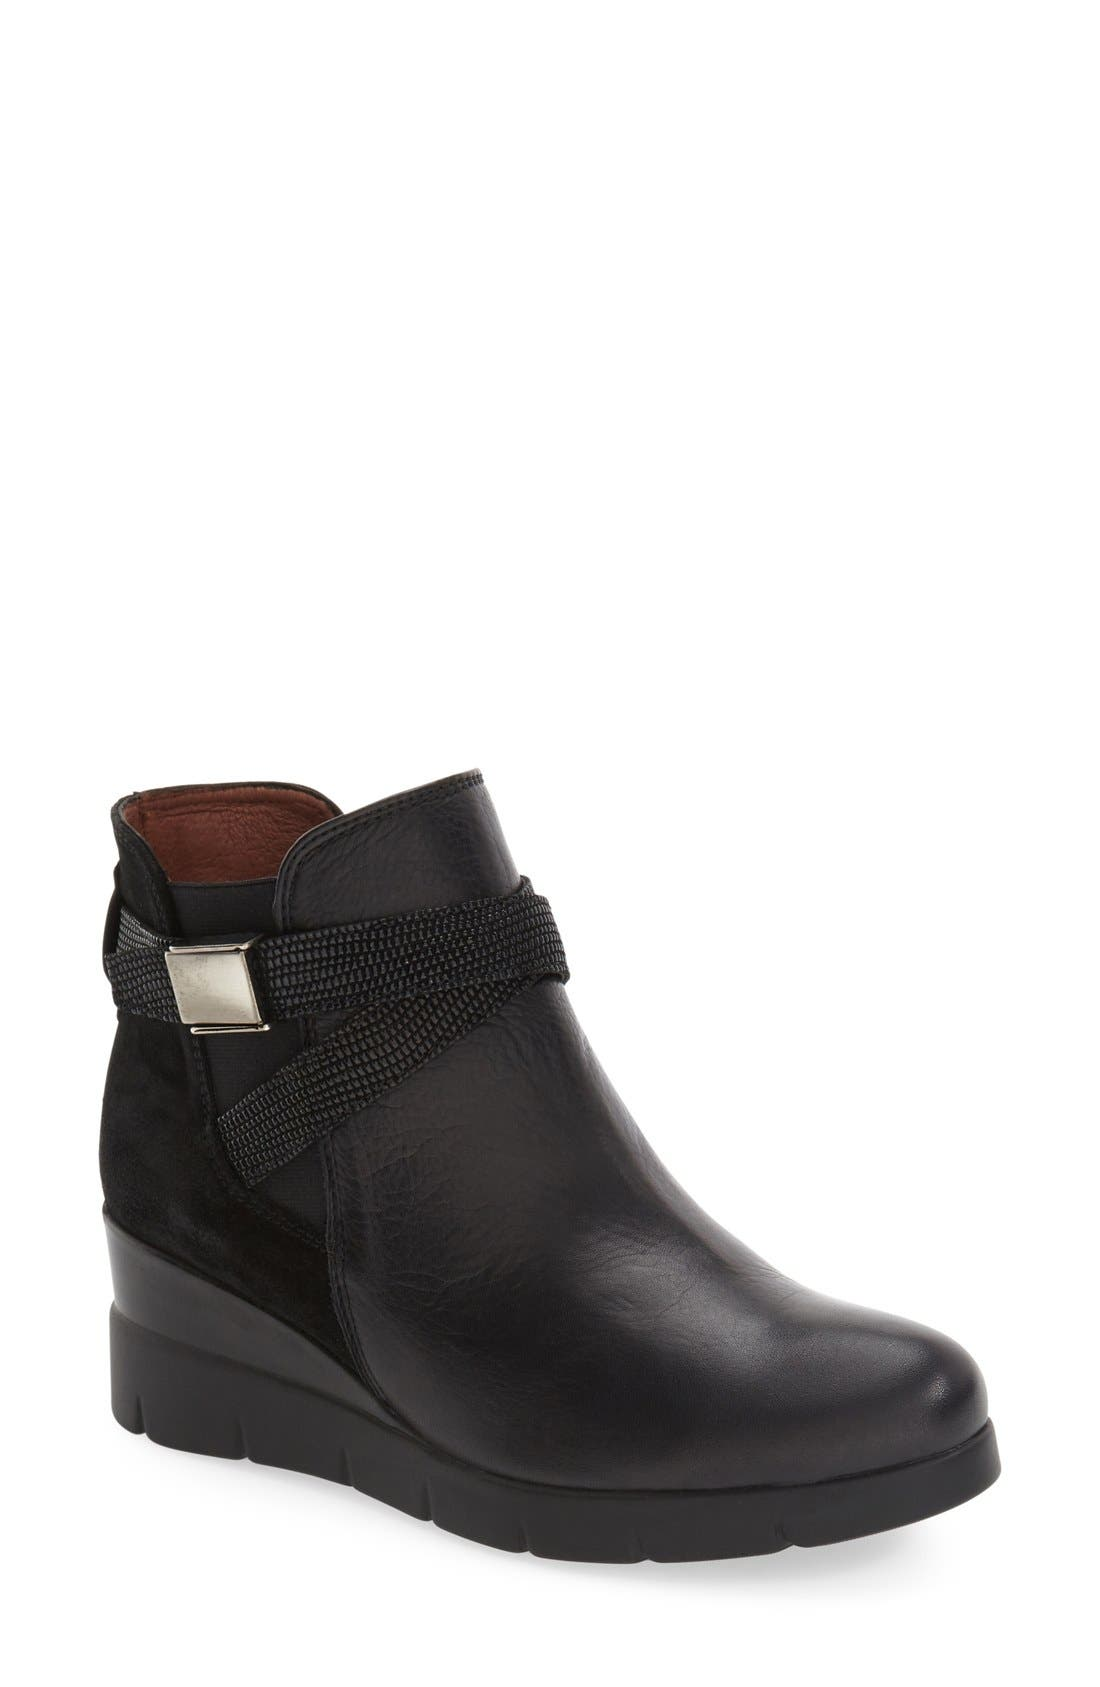 'Larae' Wedge Bootie,                             Main thumbnail 1, color,                             SOHO BLACK LEATHER